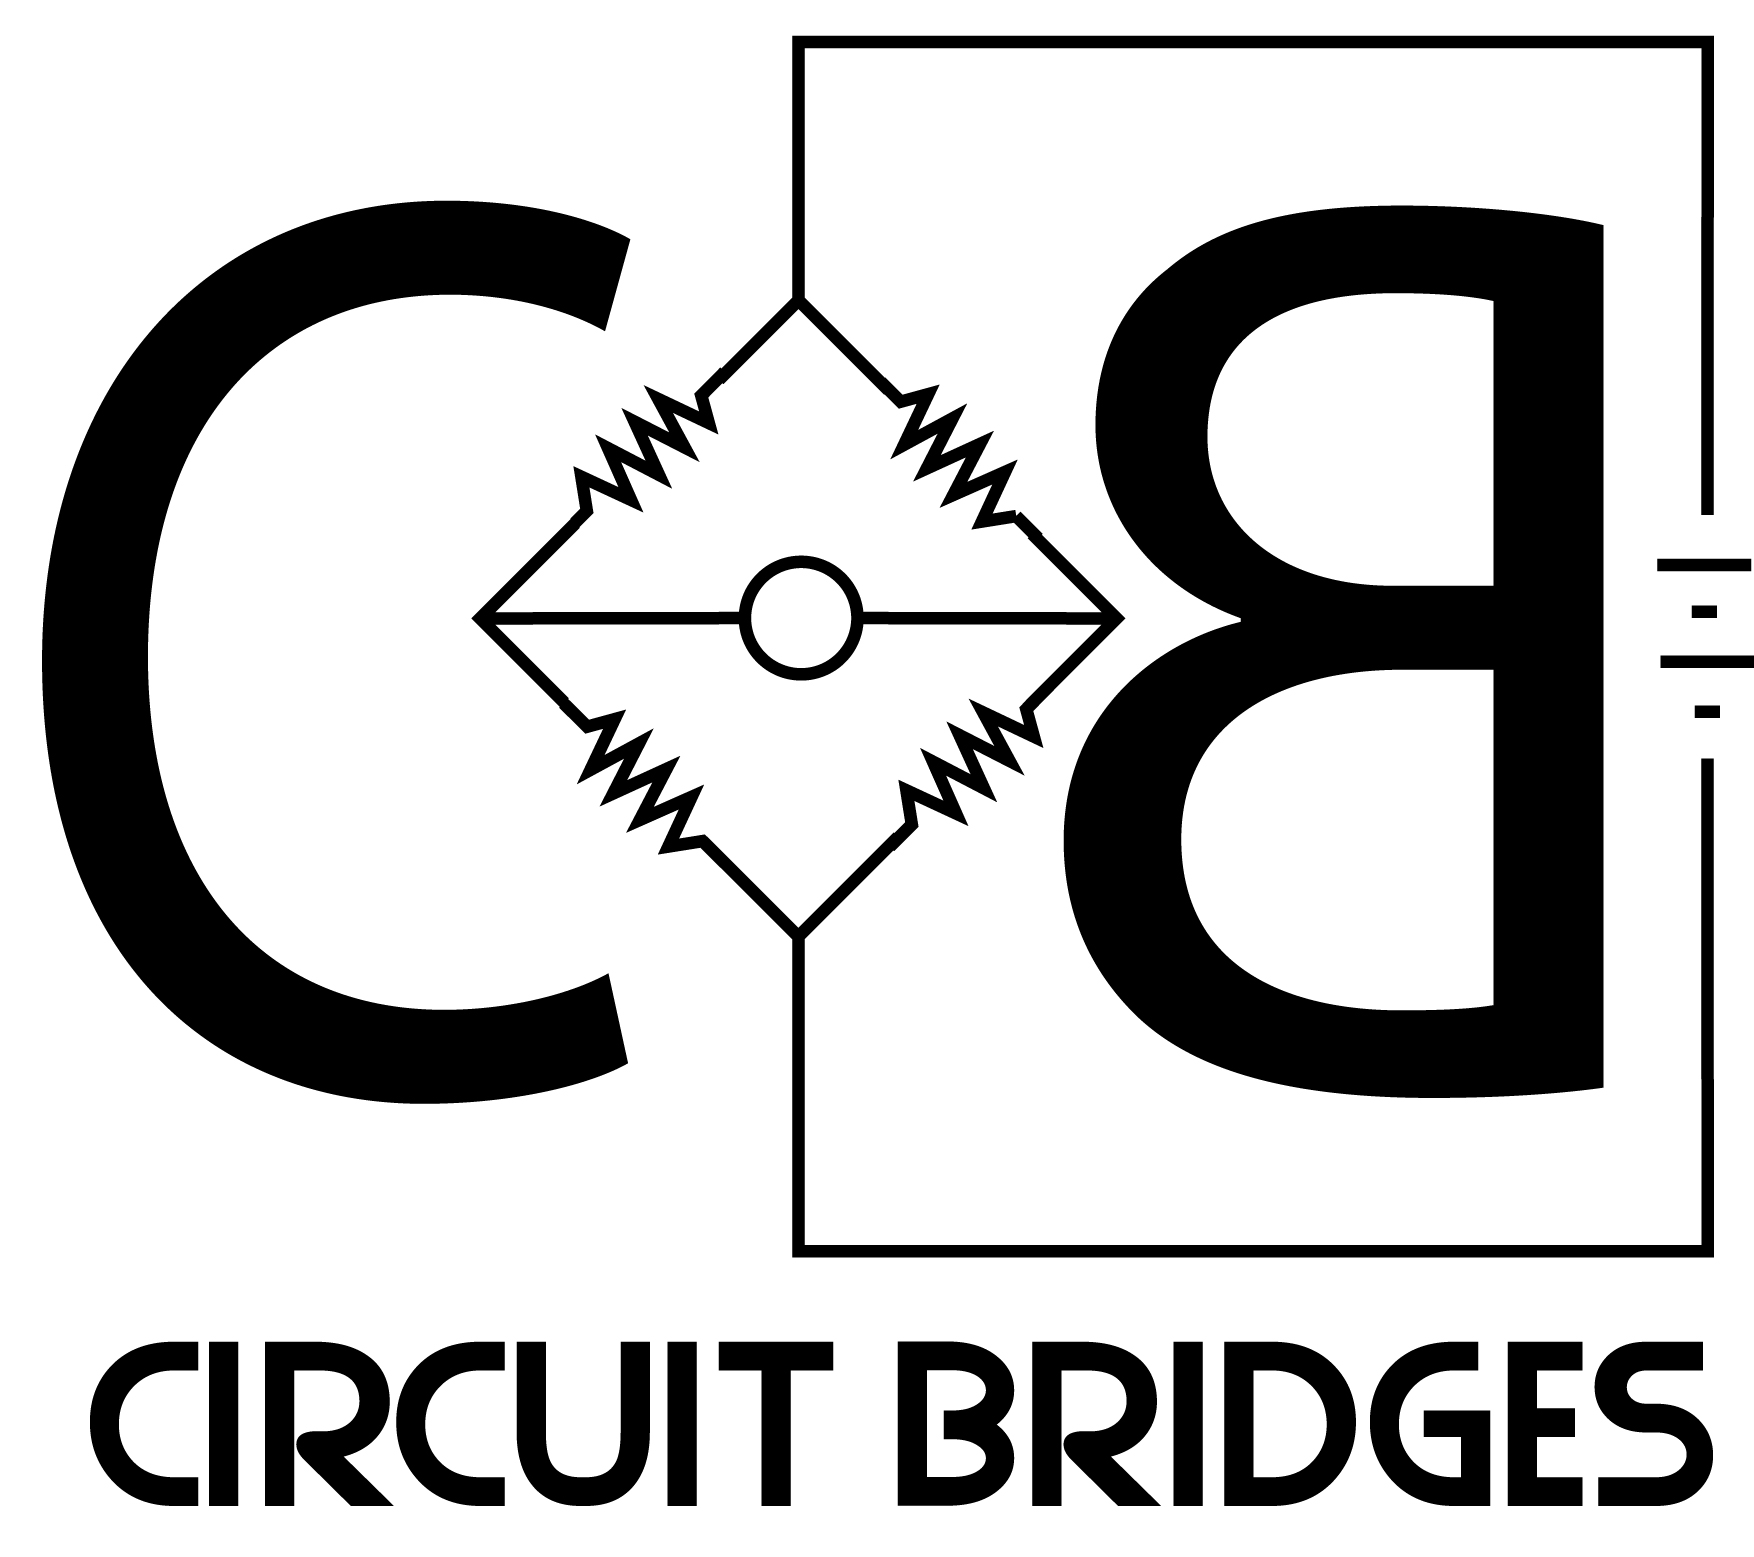 Circuit Bridges: First Bridges